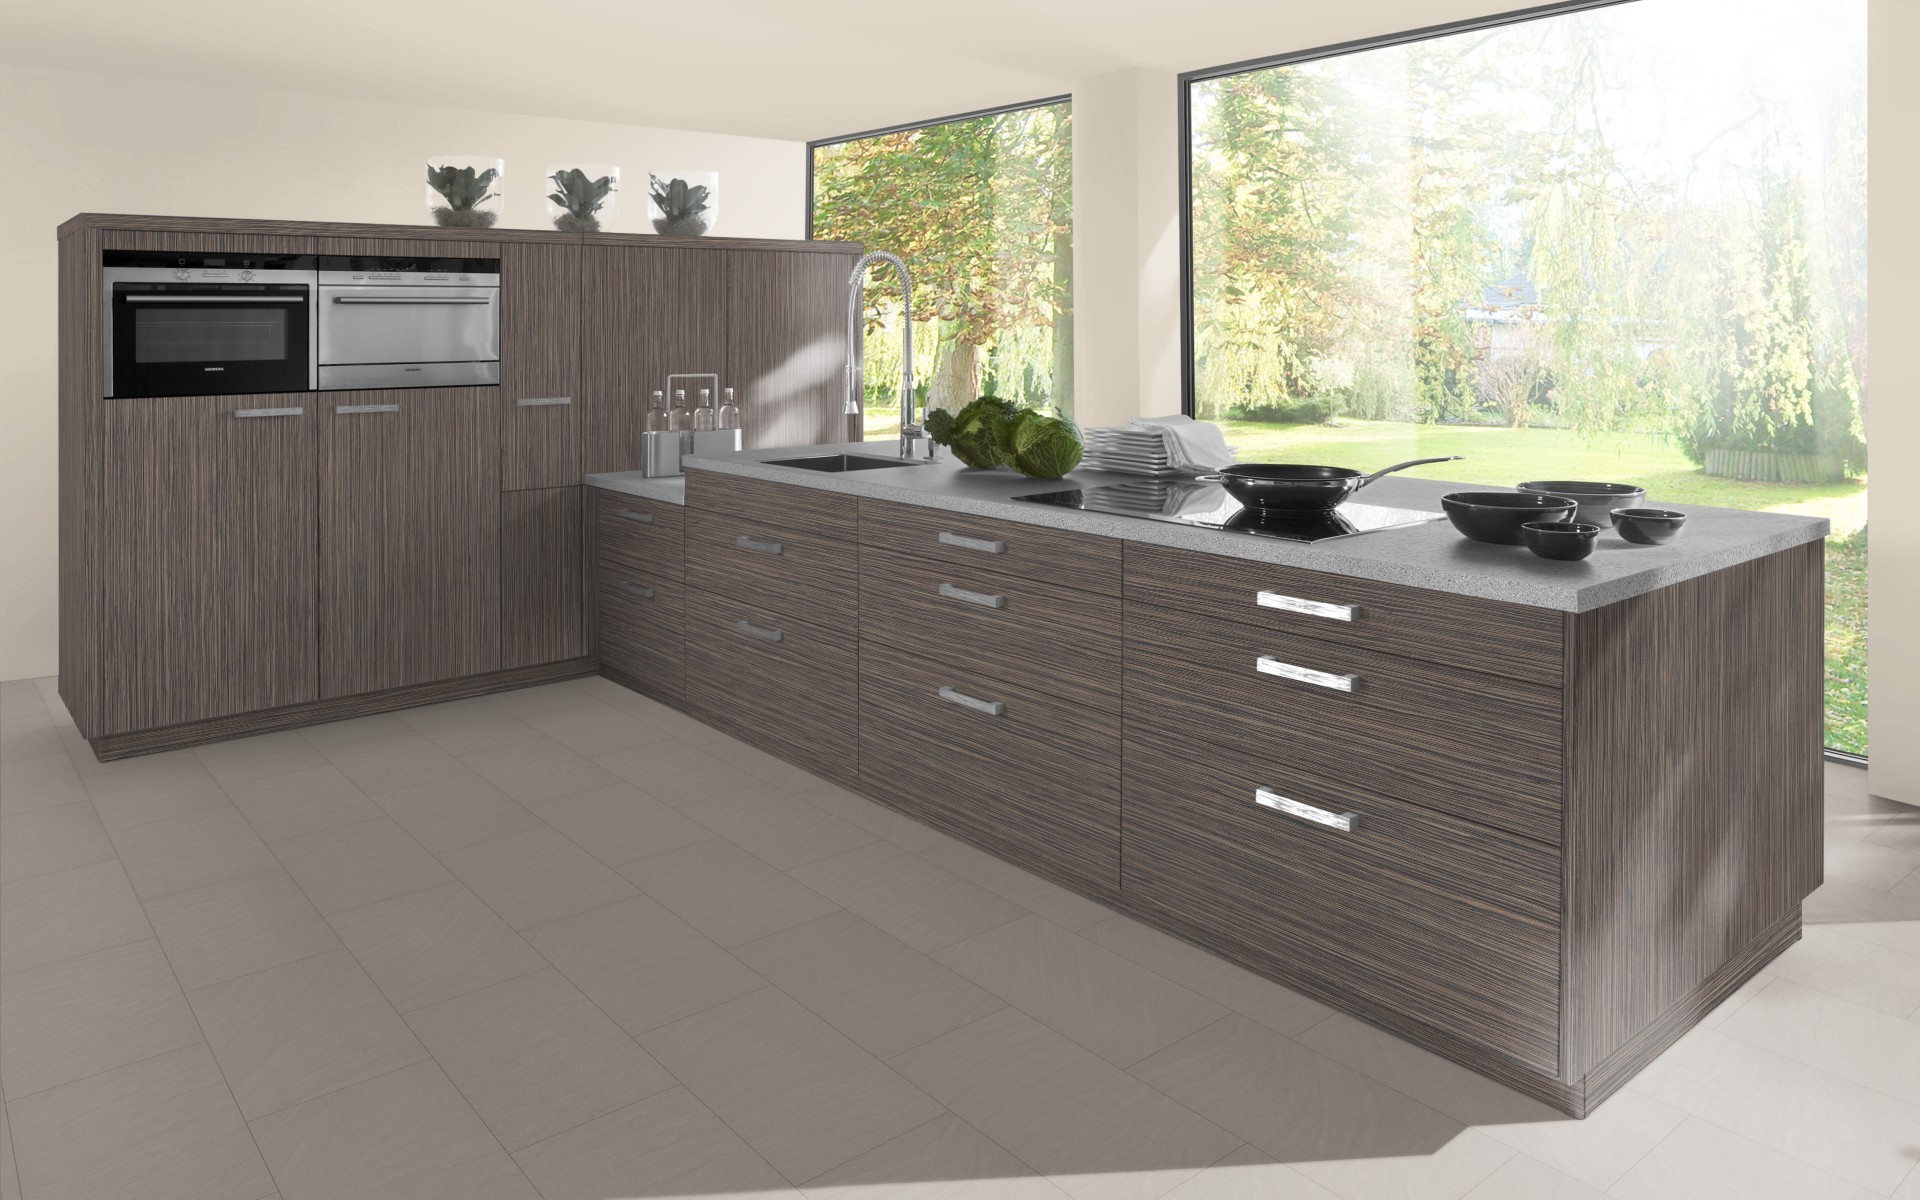 Textured Wood Tall Height Larder Broom Cupboard Doors Trade - Grey kitchen cupboard doors